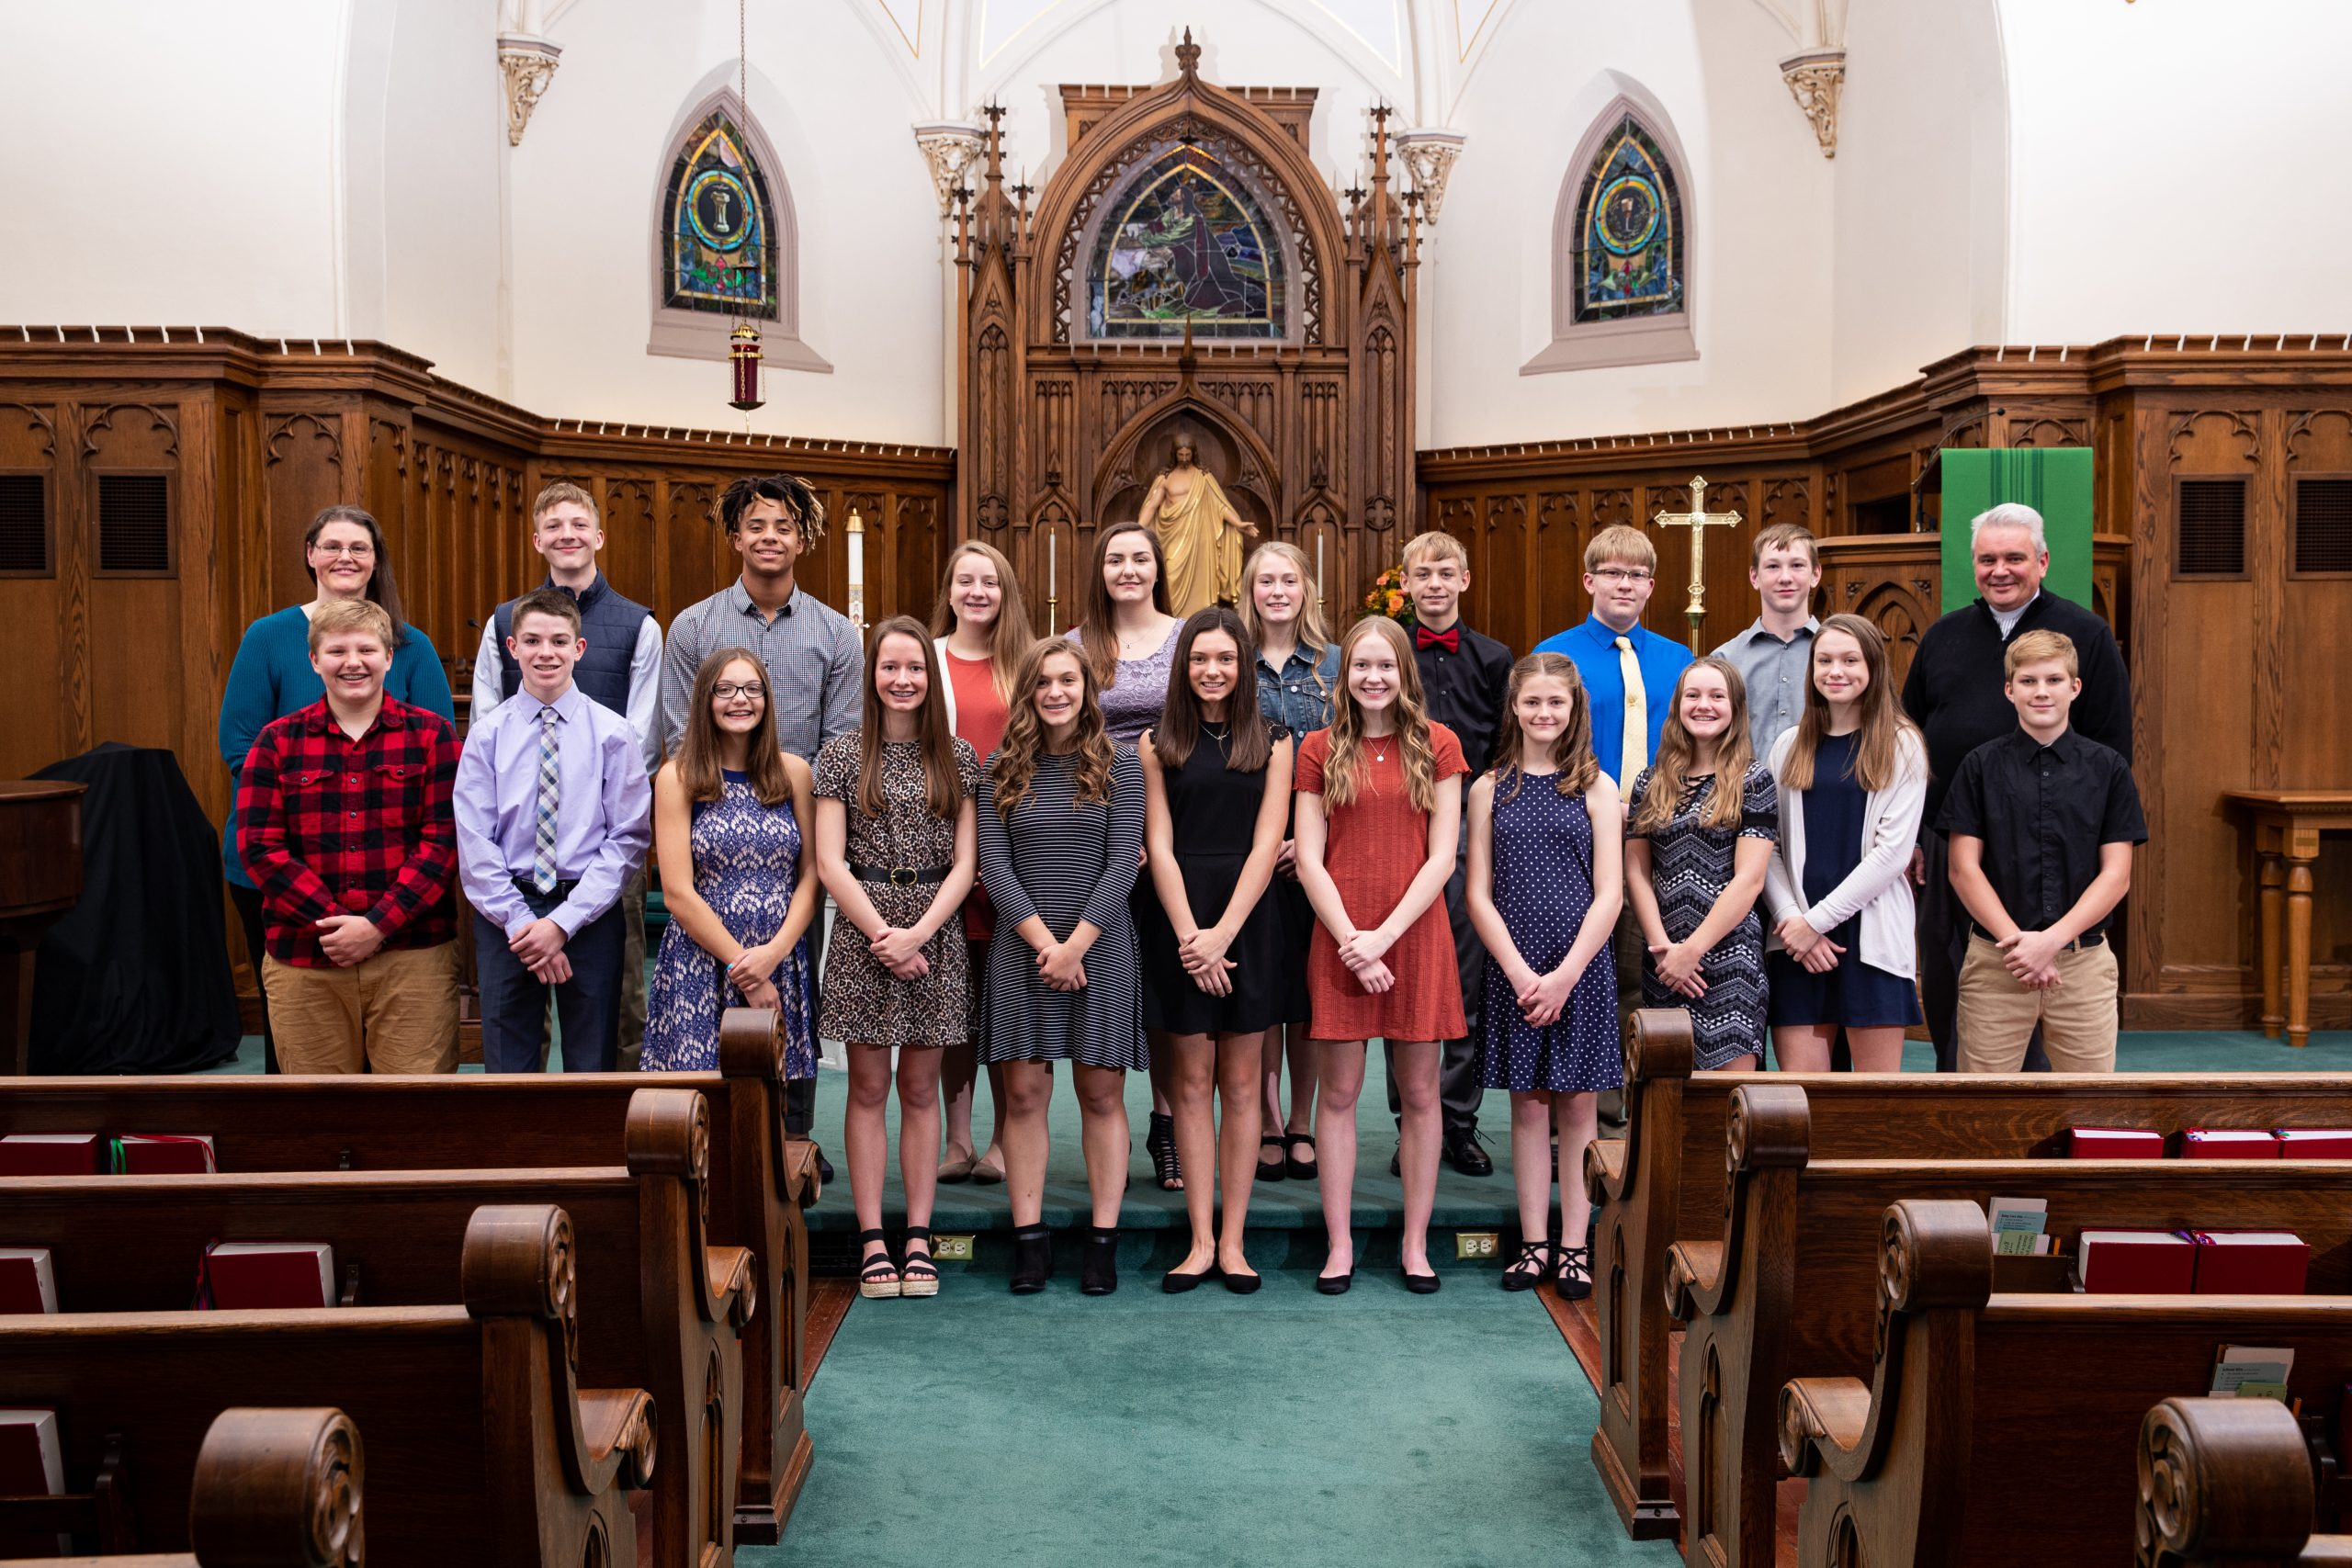 StPaulsConfirmation_102019_5